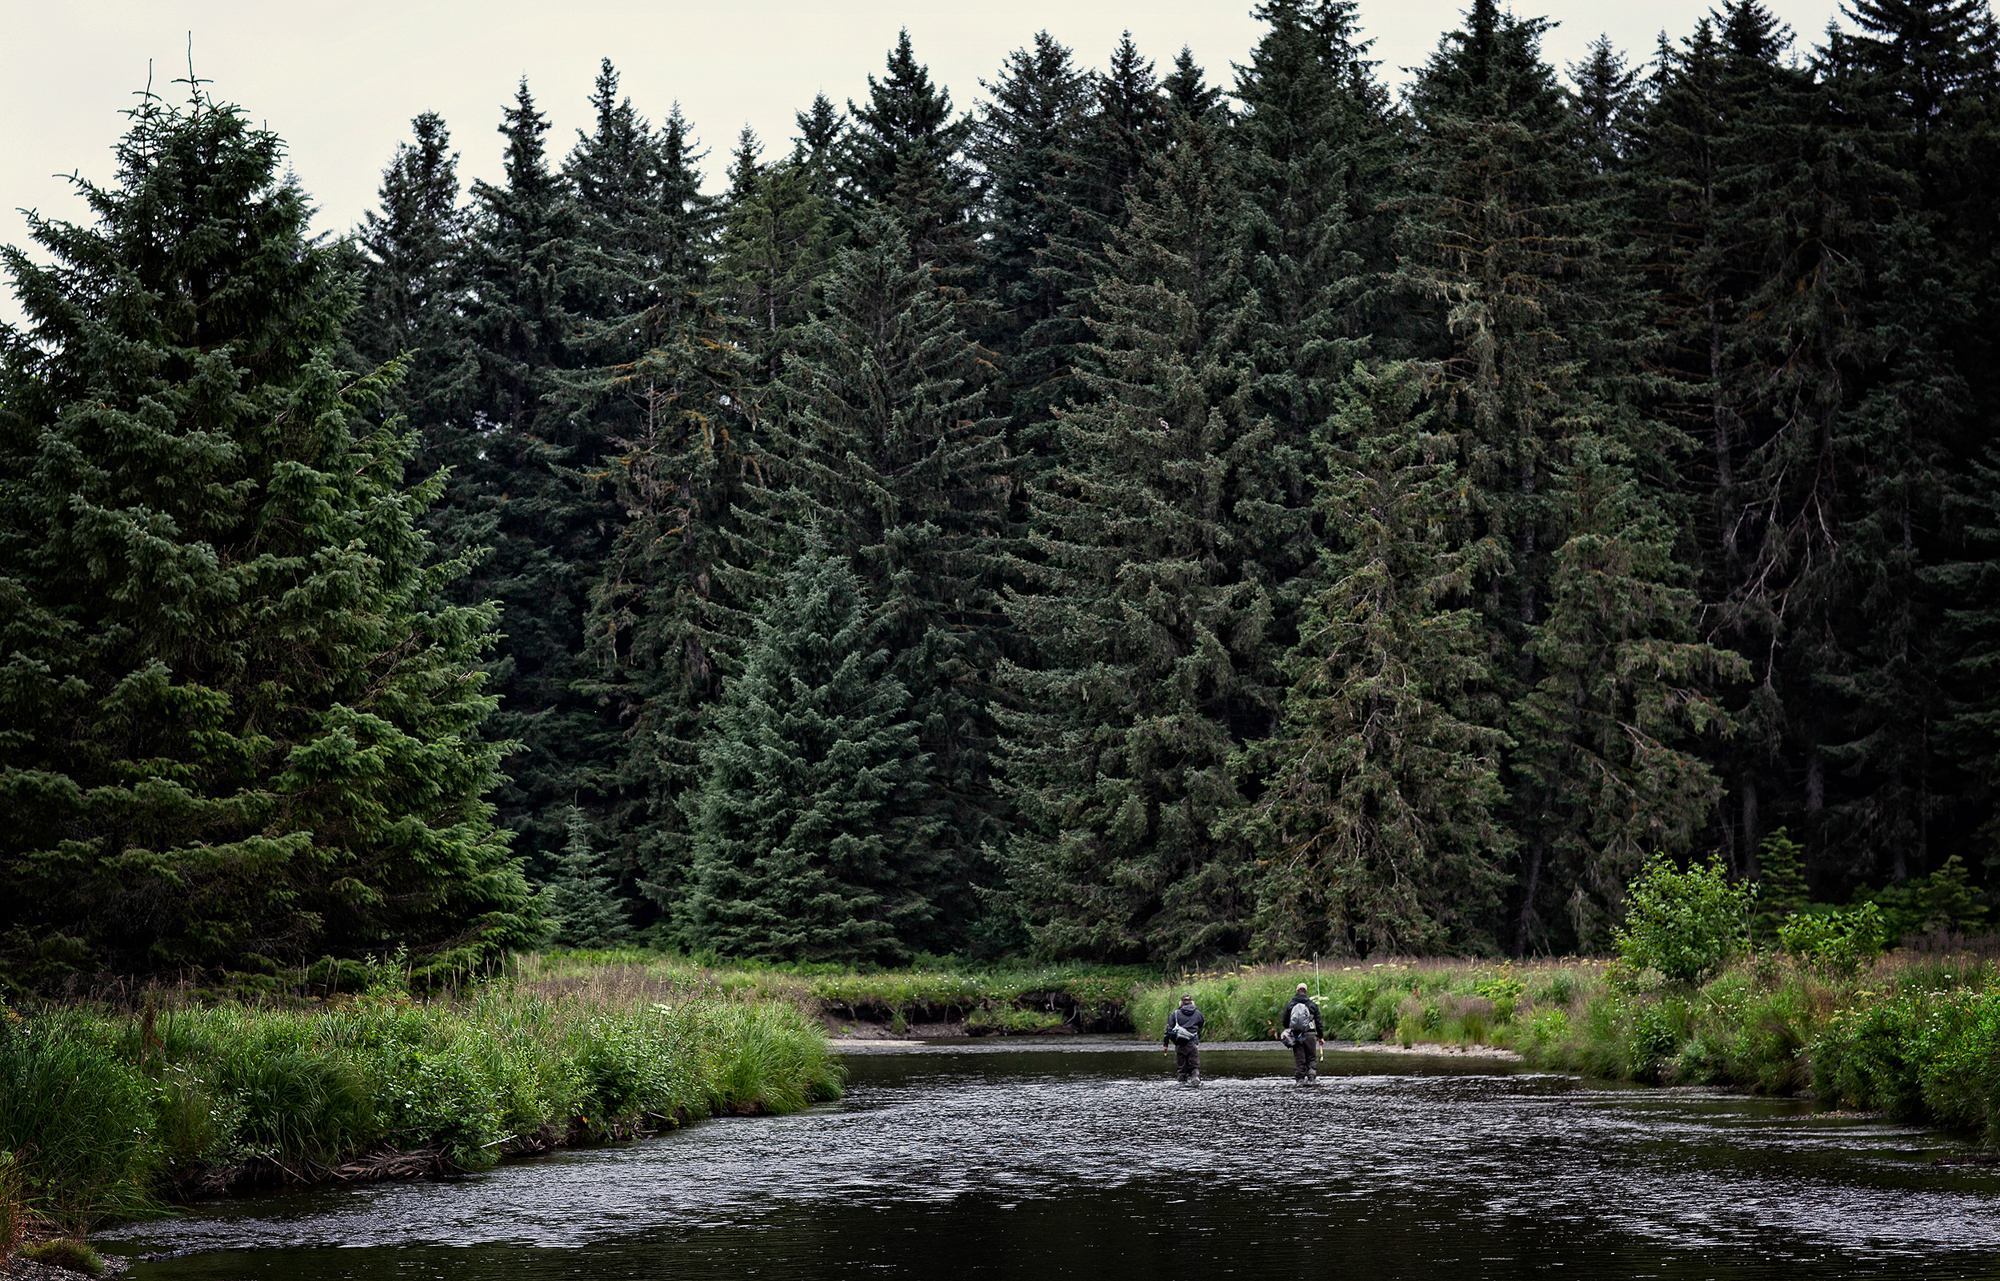 (1/5) Once the float plane departs, a long walk through thick meadows of rain-soaked marsh grasses ensues, eventually yielding the the chum salmon choked creek. As expected, hordes of dolly varden have followed the spawning chum in to feast on their eggs, and we've followed the dollies (photo: Earl Harper).